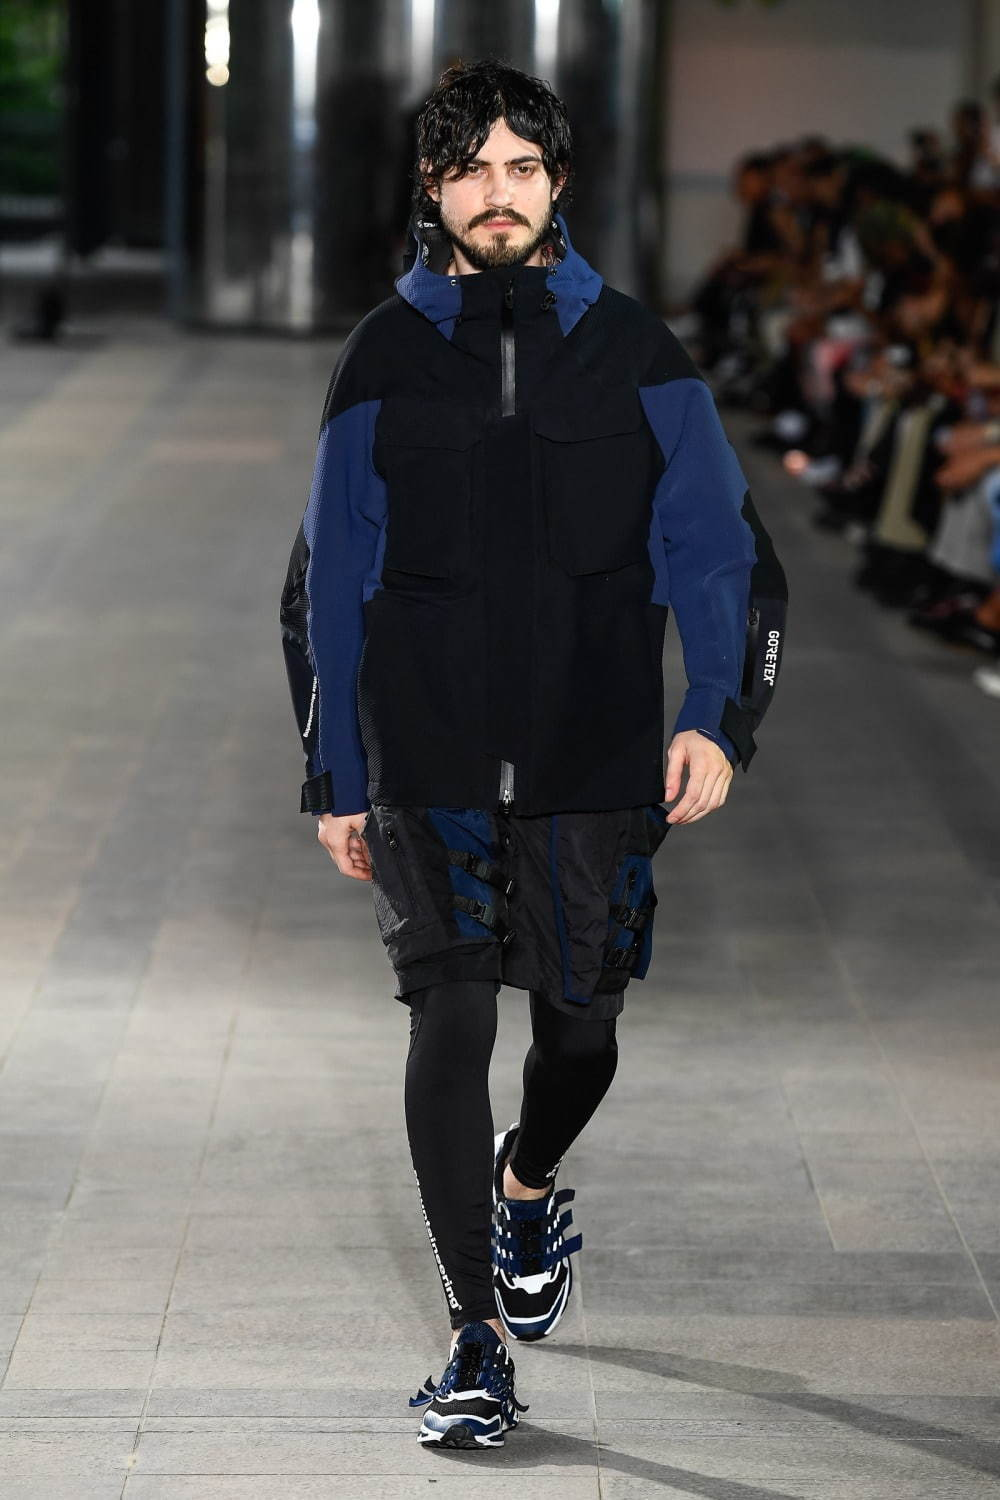 White Mountaineering - 2020 S/S Collection._f0020773_18423882.jpg